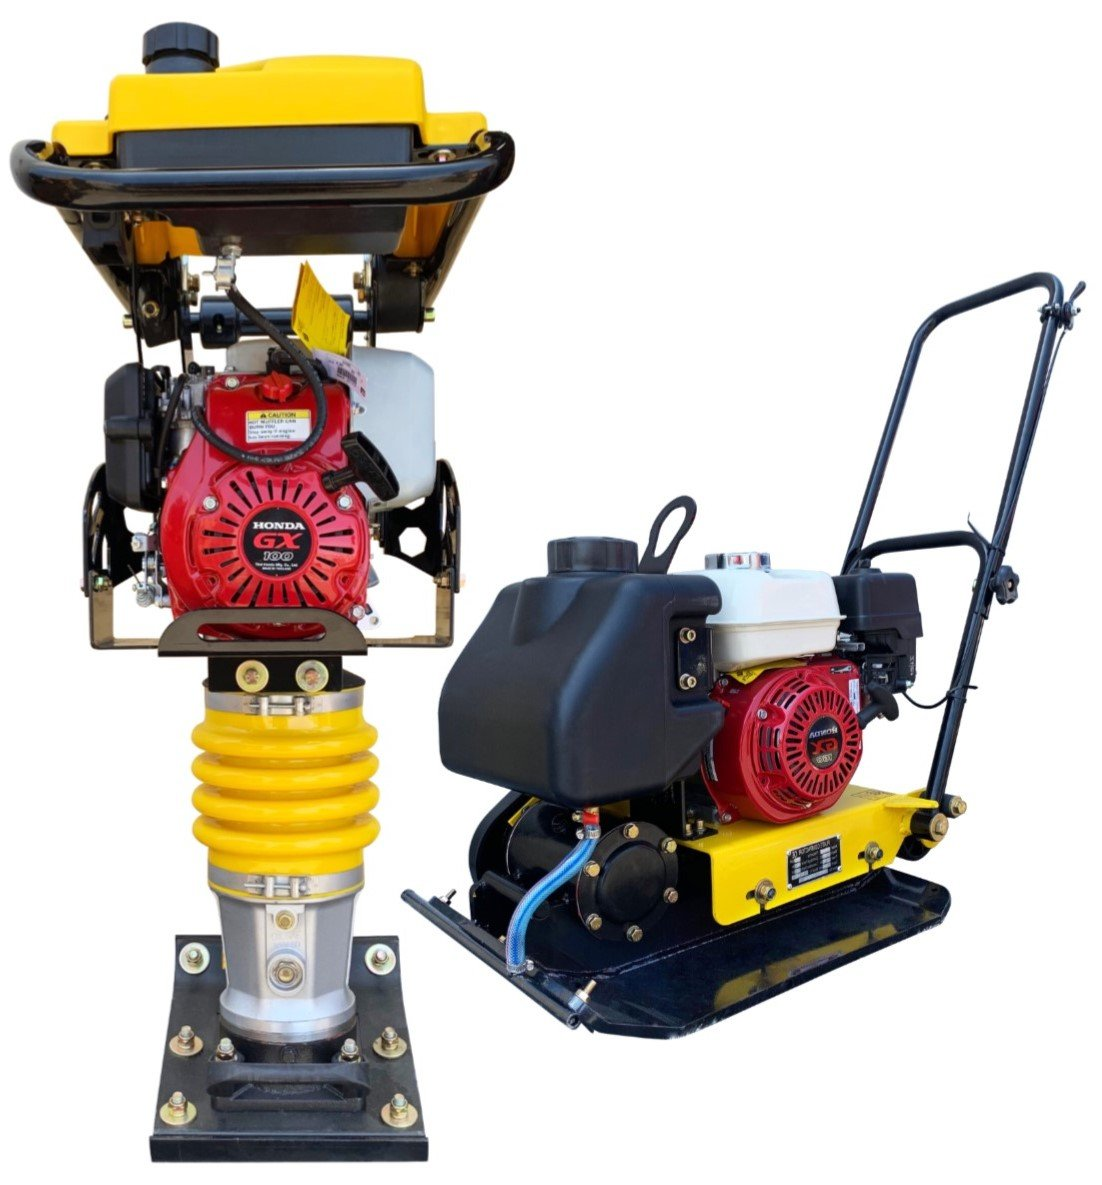 Honda Tamper Rammer  AND Plate Compactor Combo!! EPA Jumping Jack 3 Year